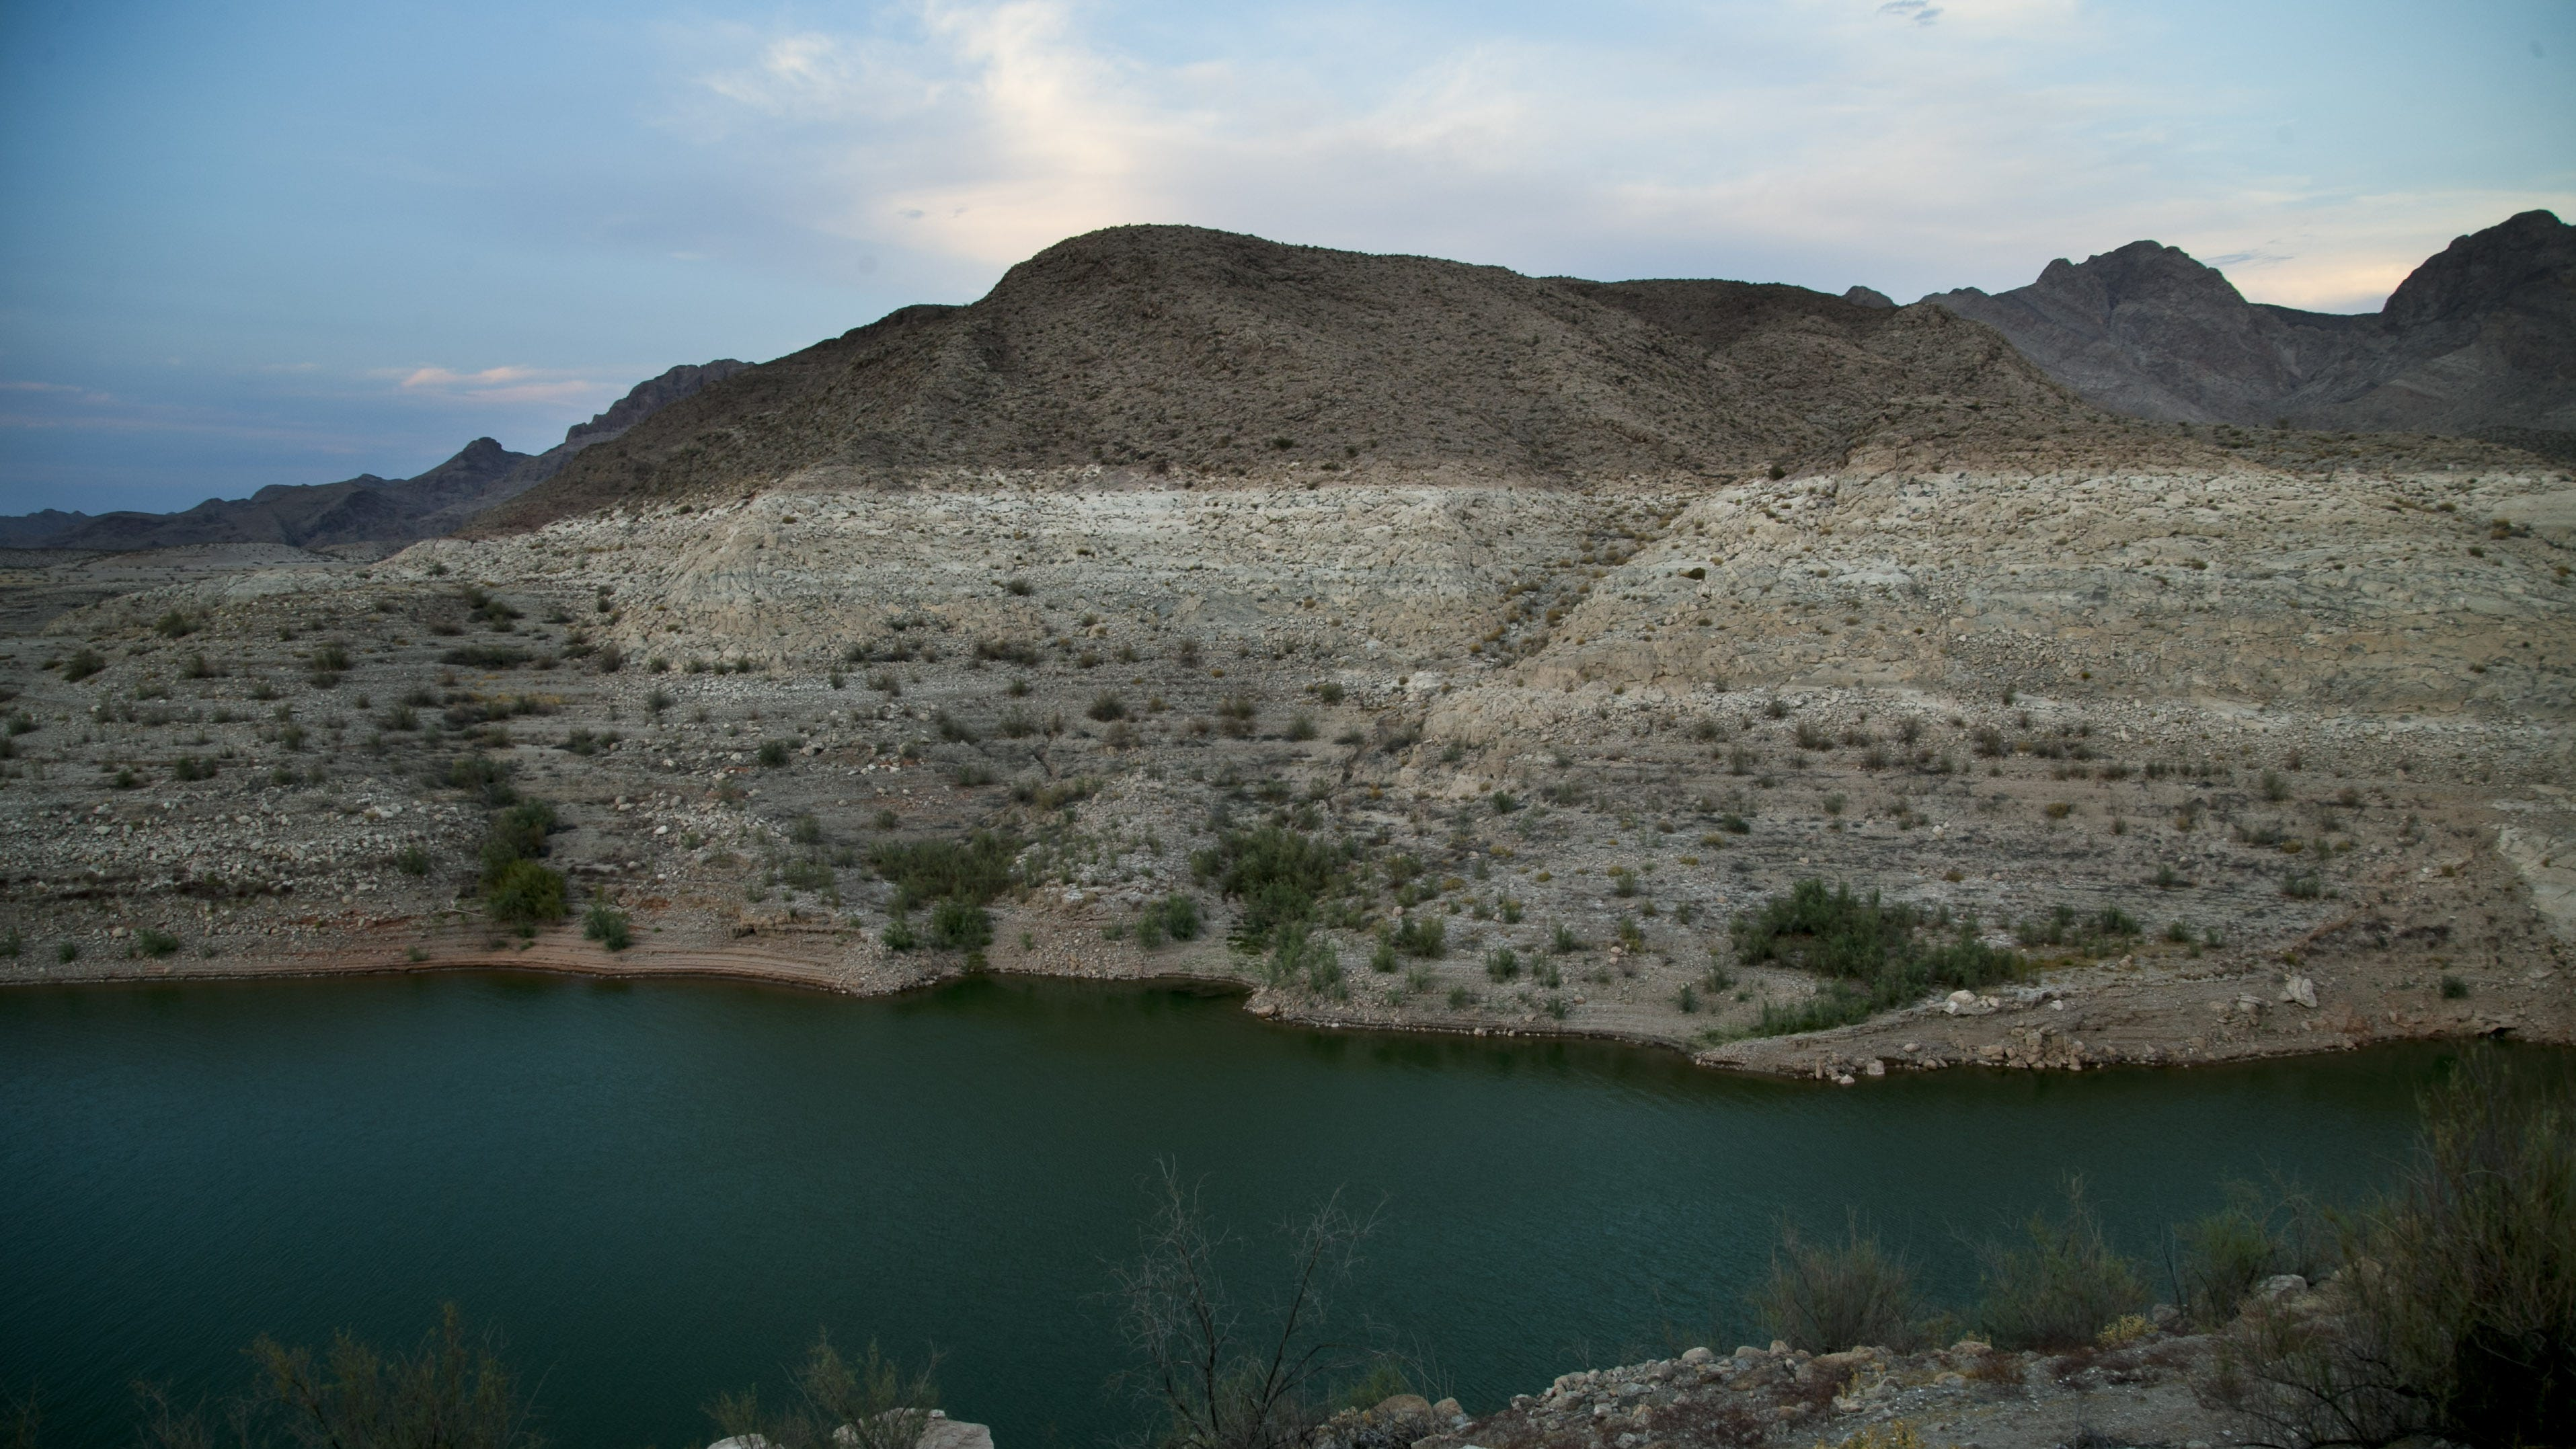 A larger issue looms over short-term Colorado River plan: climate change